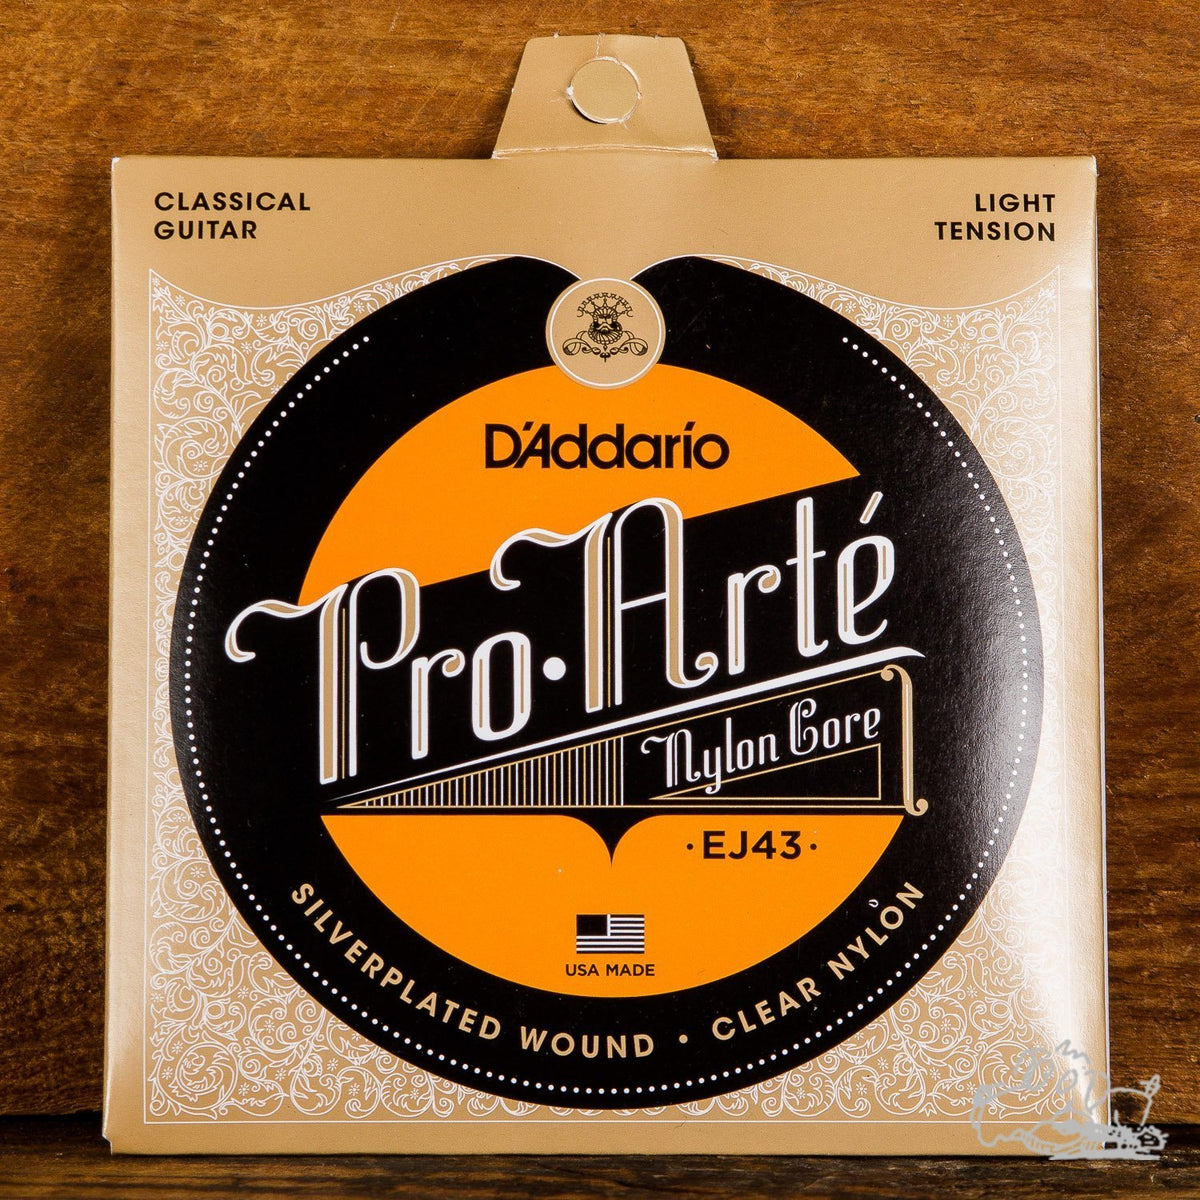 D'Addario Pro Arte EJ43 Classical Guitar Strings